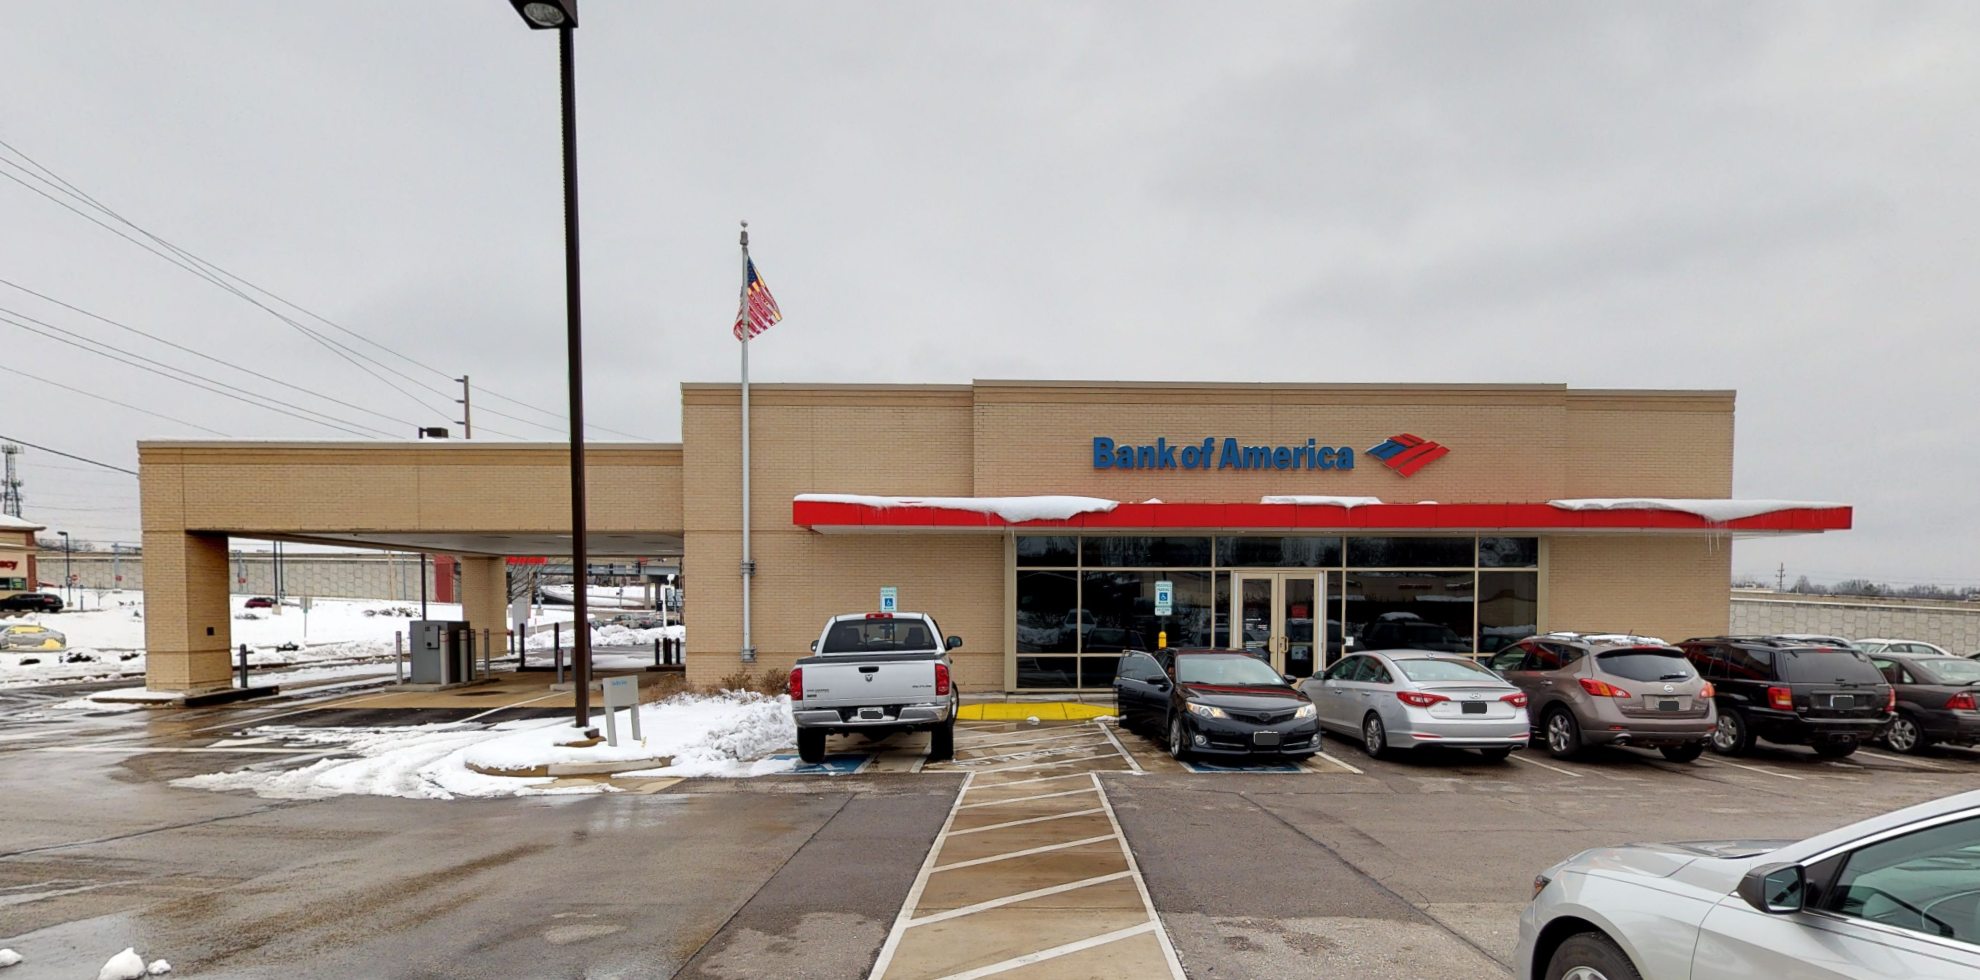 Bank of America financial center with drive-thru ATM and teller | 6950 Parker Rd, Florissant, MO 63033